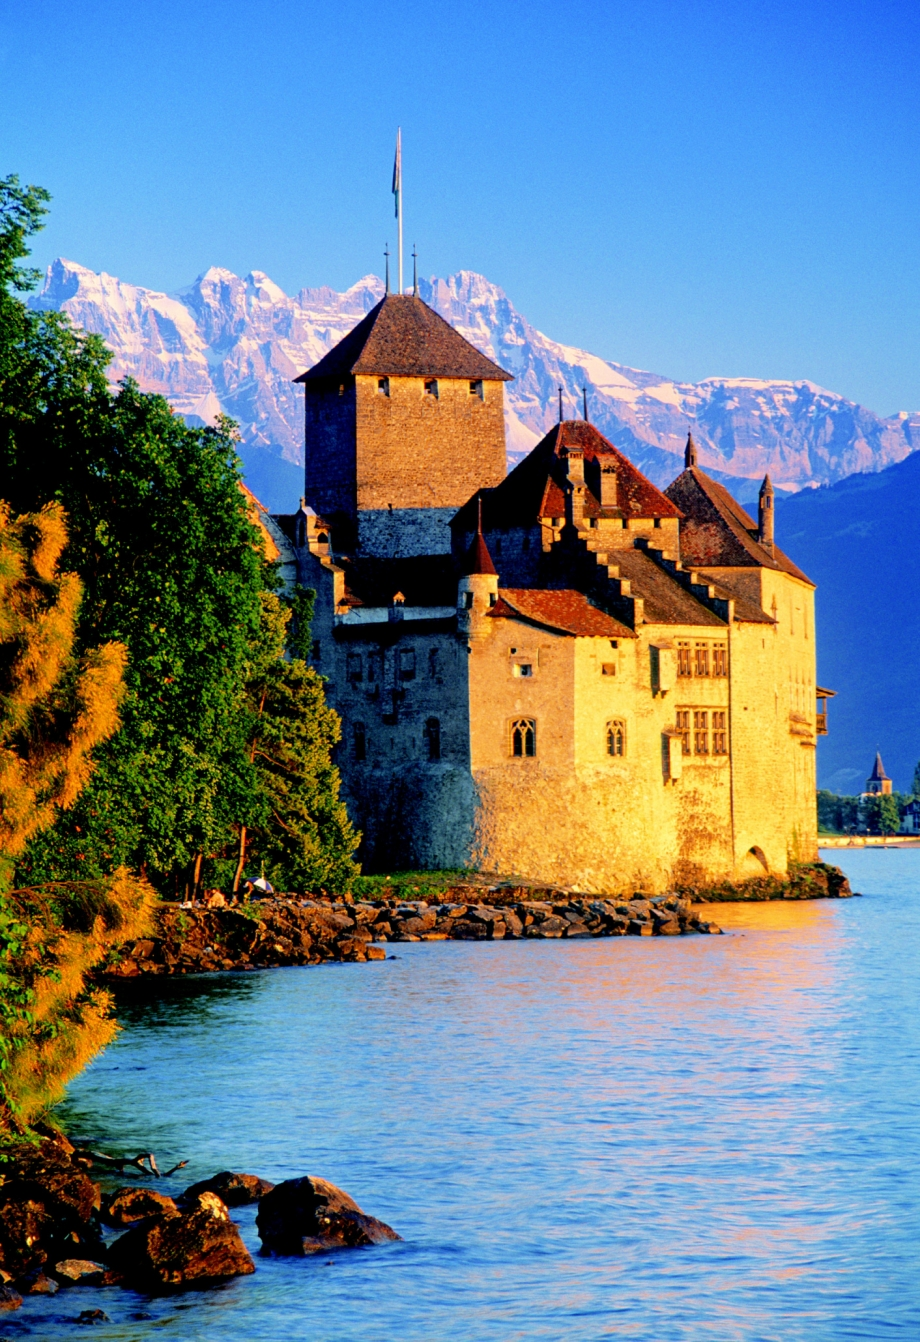 Chateau de Chillon, Montreaux, Lake Geneva, Switzerland - AspirantSG